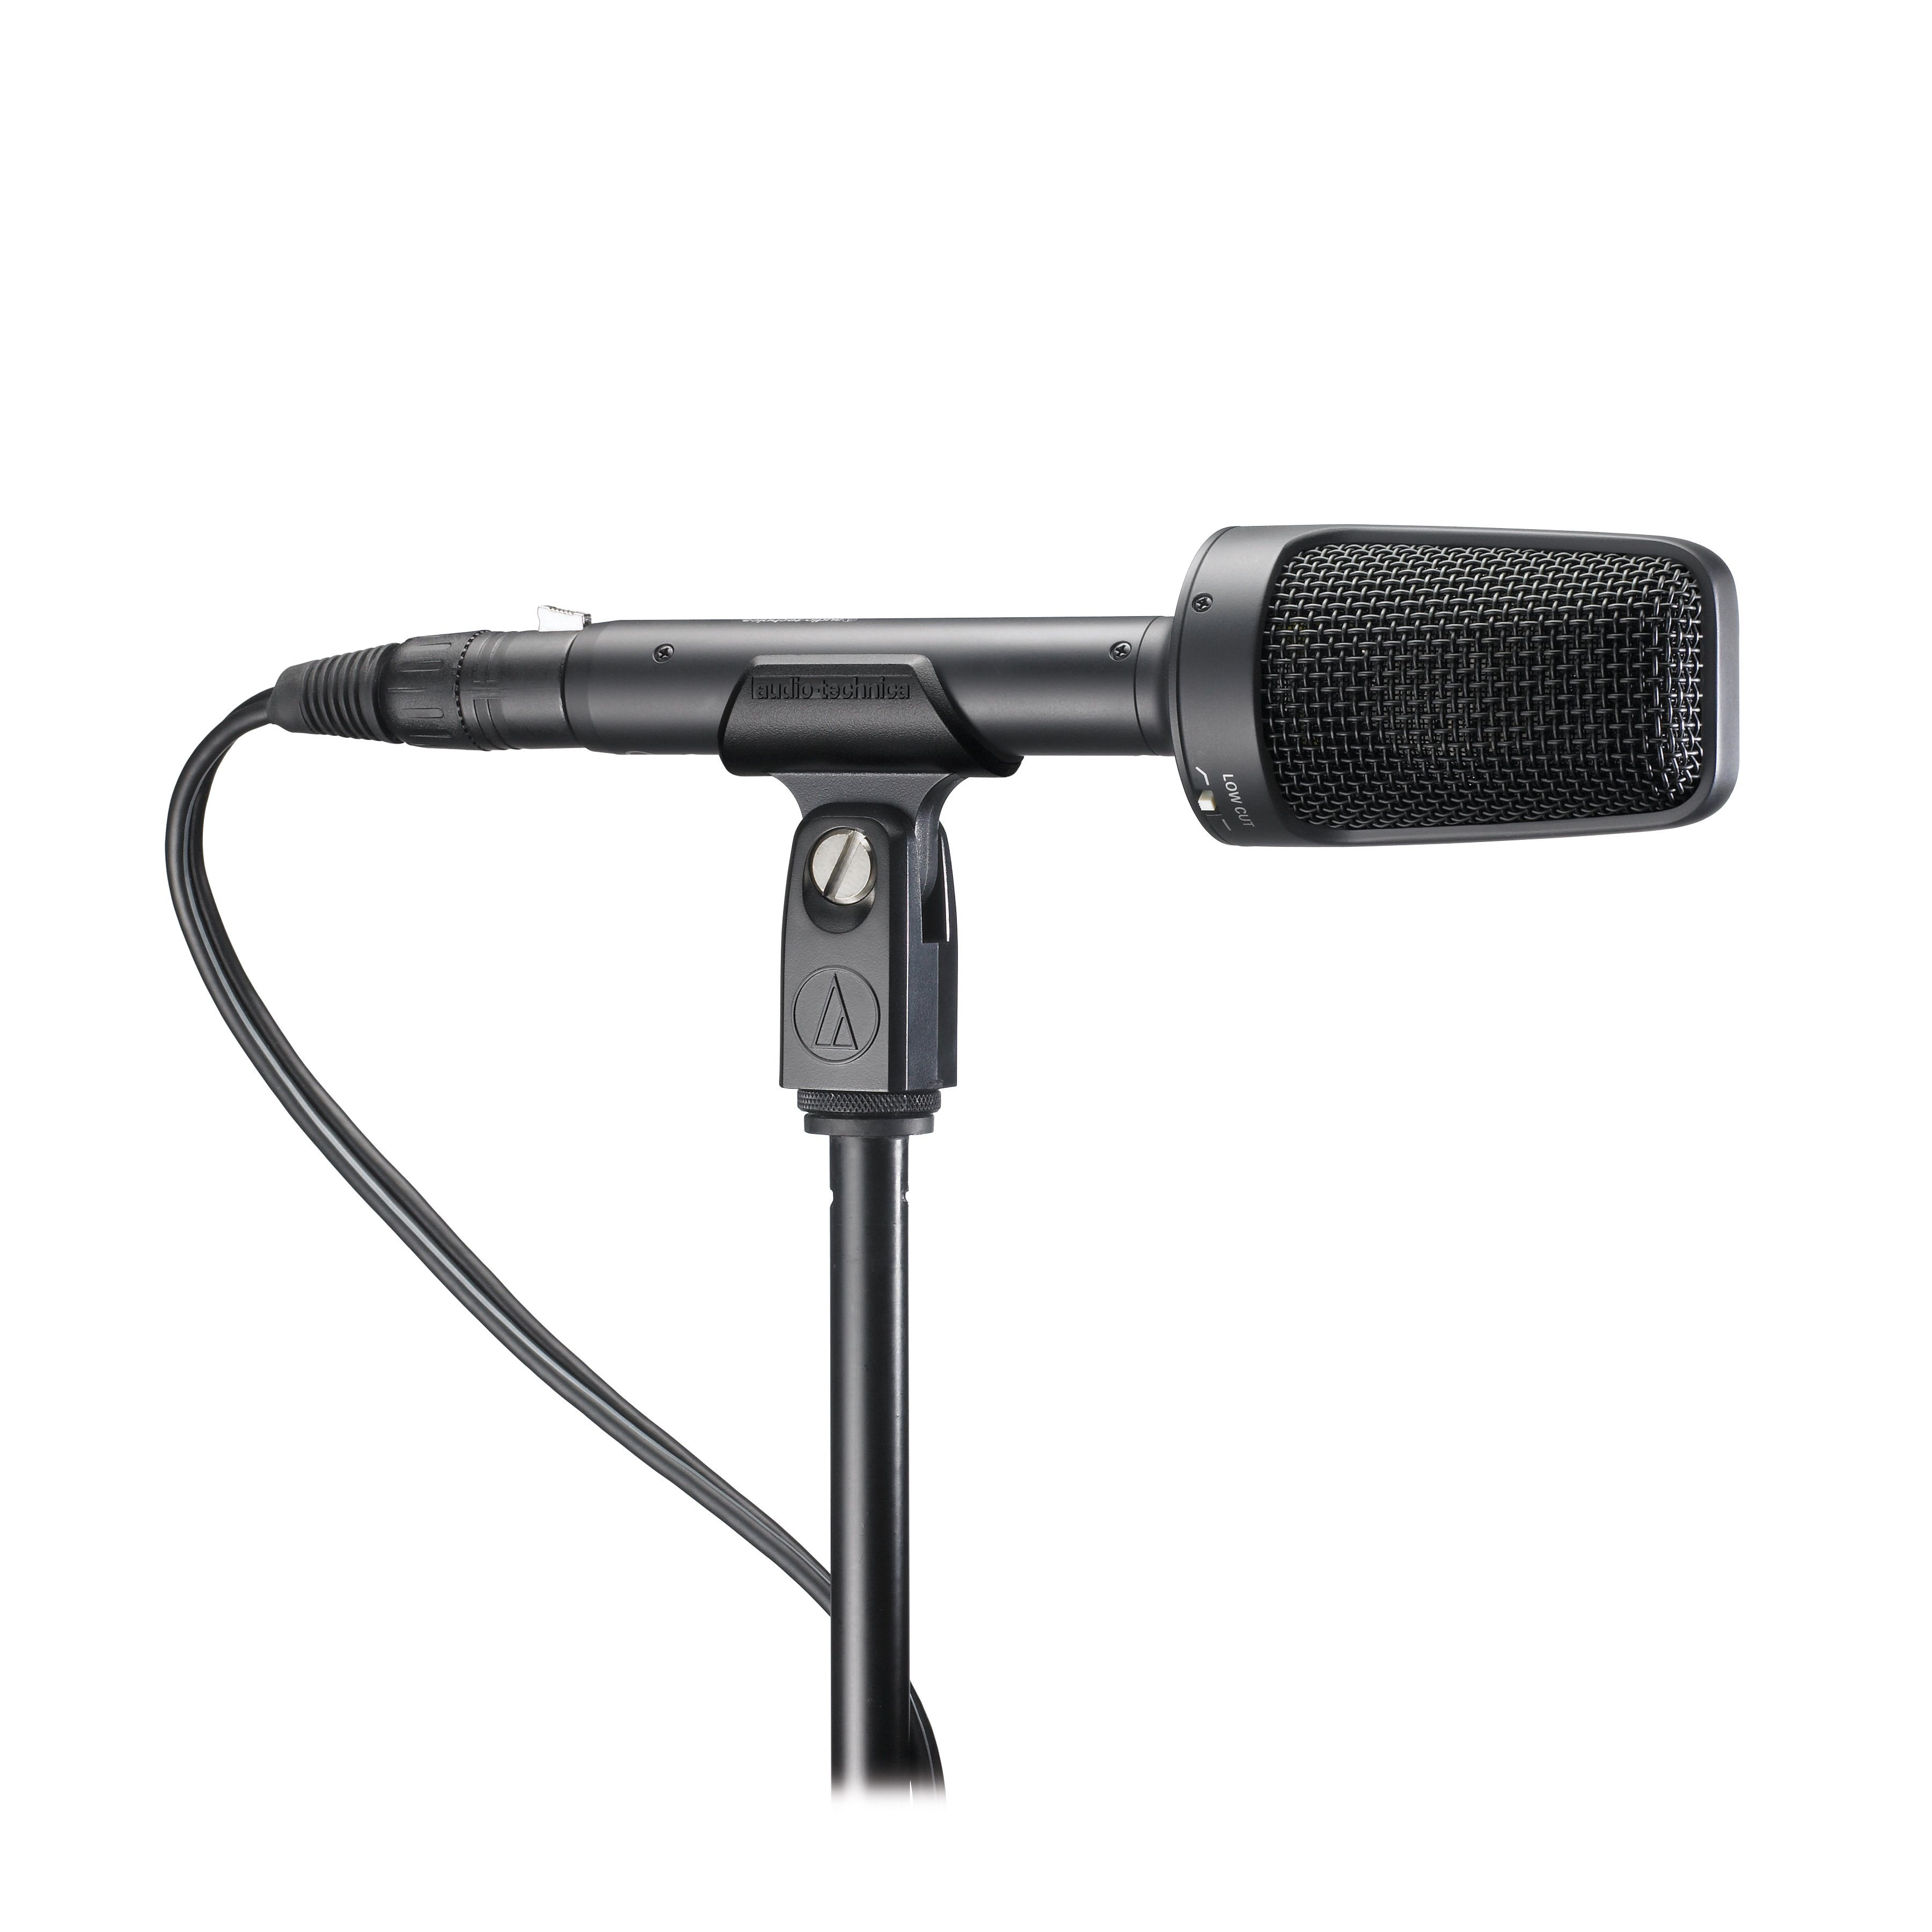 Field Recording Gear Buyers Guide Creative Stand Microphone Mic Holder For Audio Technica Bp4025 You Can Attach Any Professional